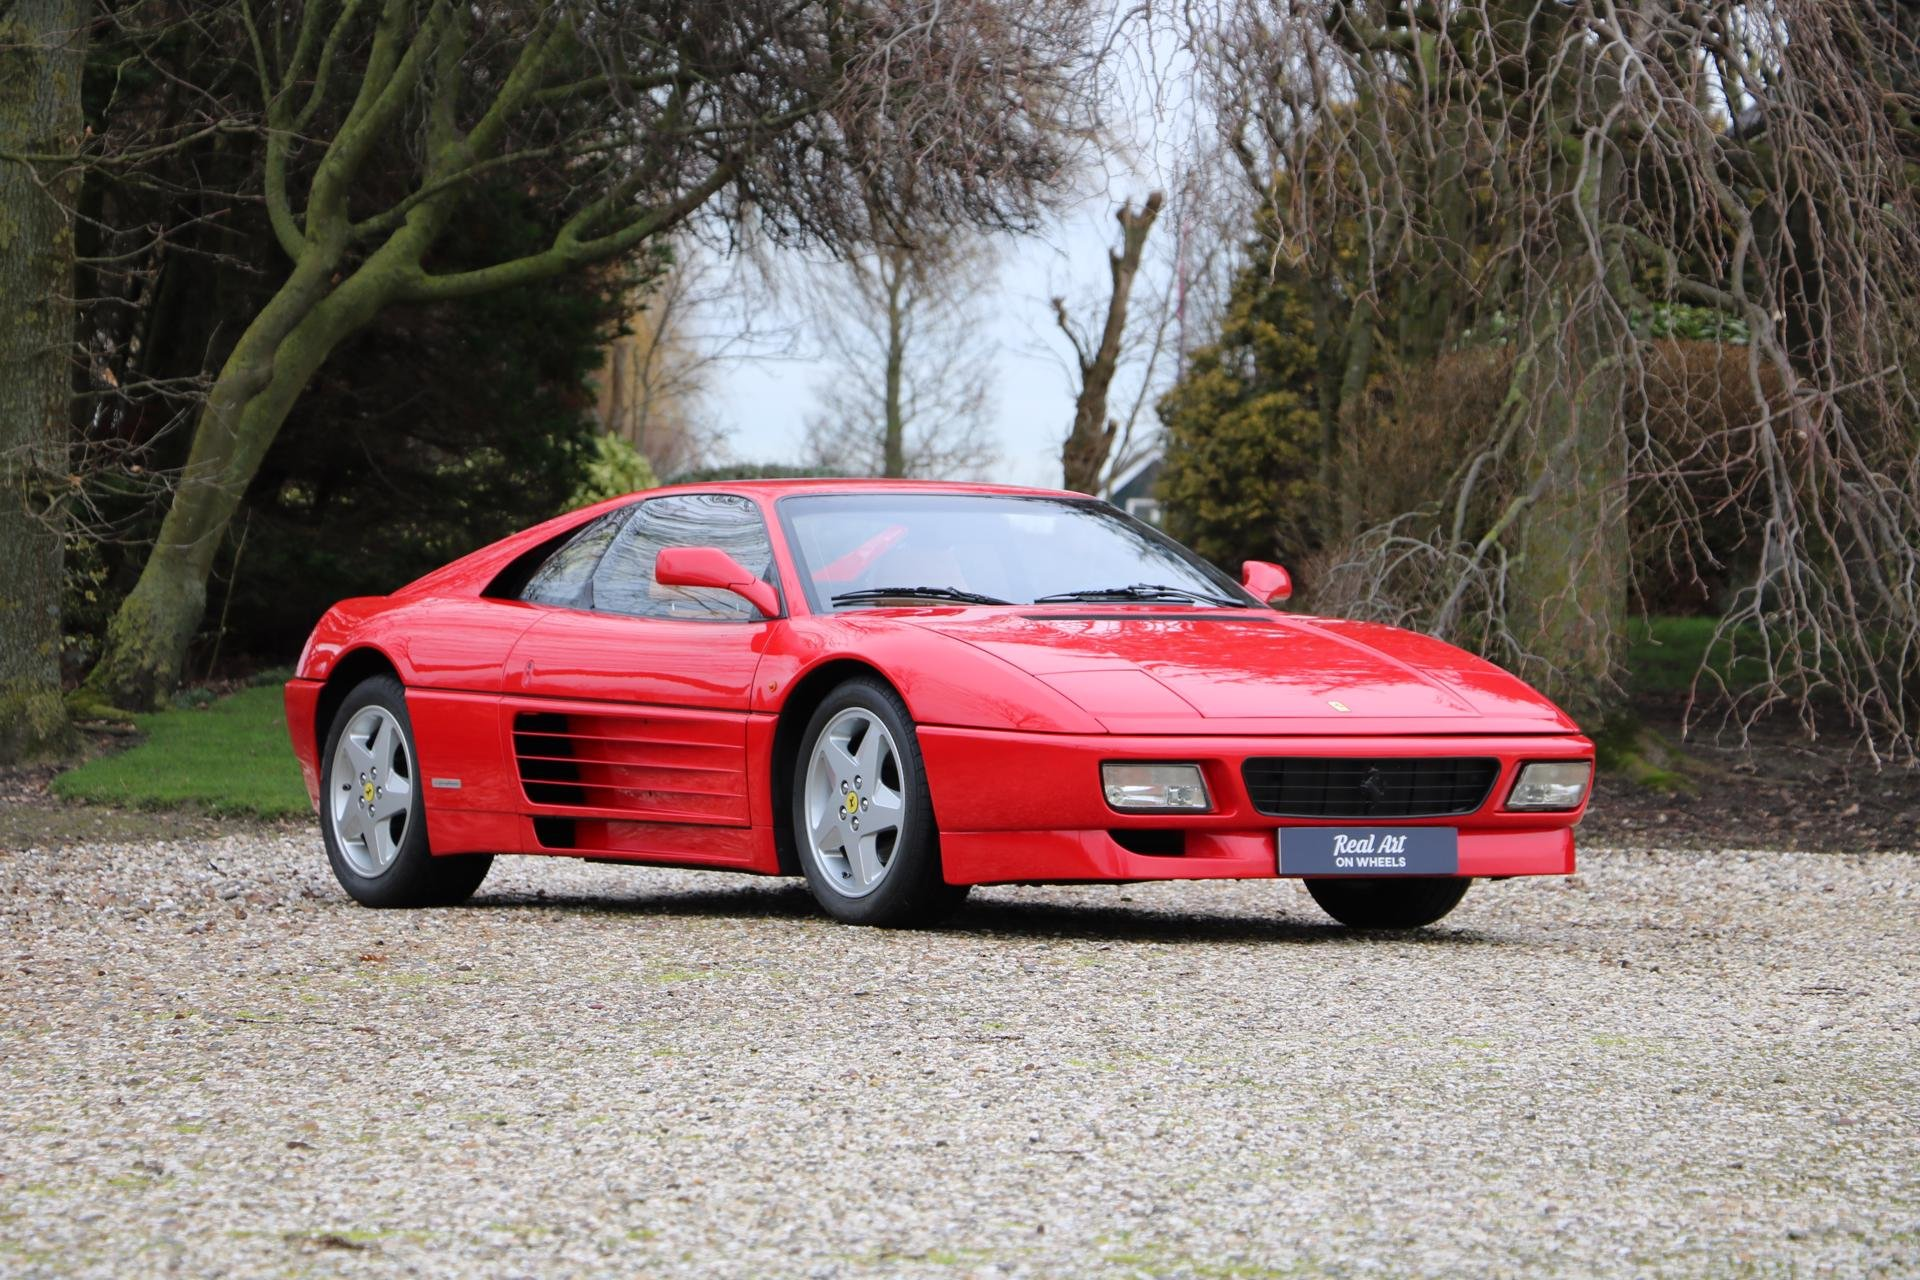 Real Art on Wheels | Ferrari 348 TB